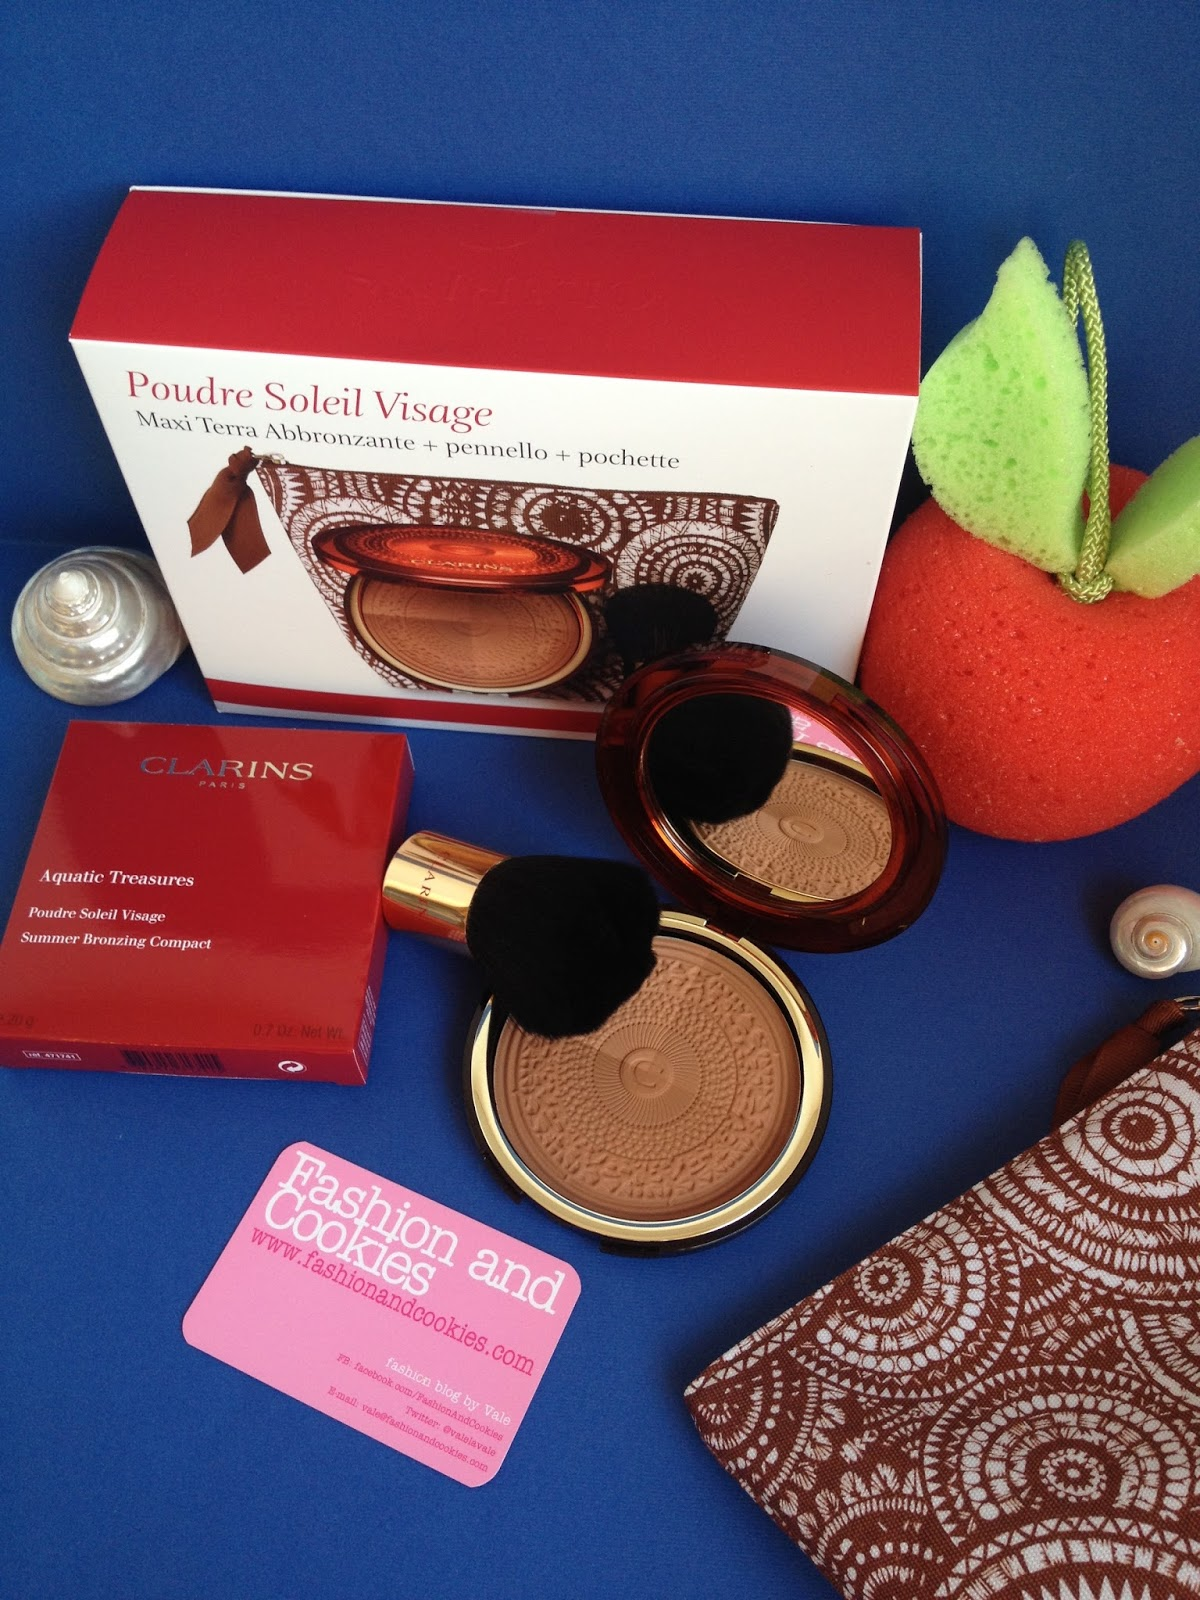 Clarins Aquatic Treasures Poudre Soleil Visage on Fashion and Cookies fashion and beauty blog, clarins aquatic treasures bronzer review, Clarins terra abbronzante